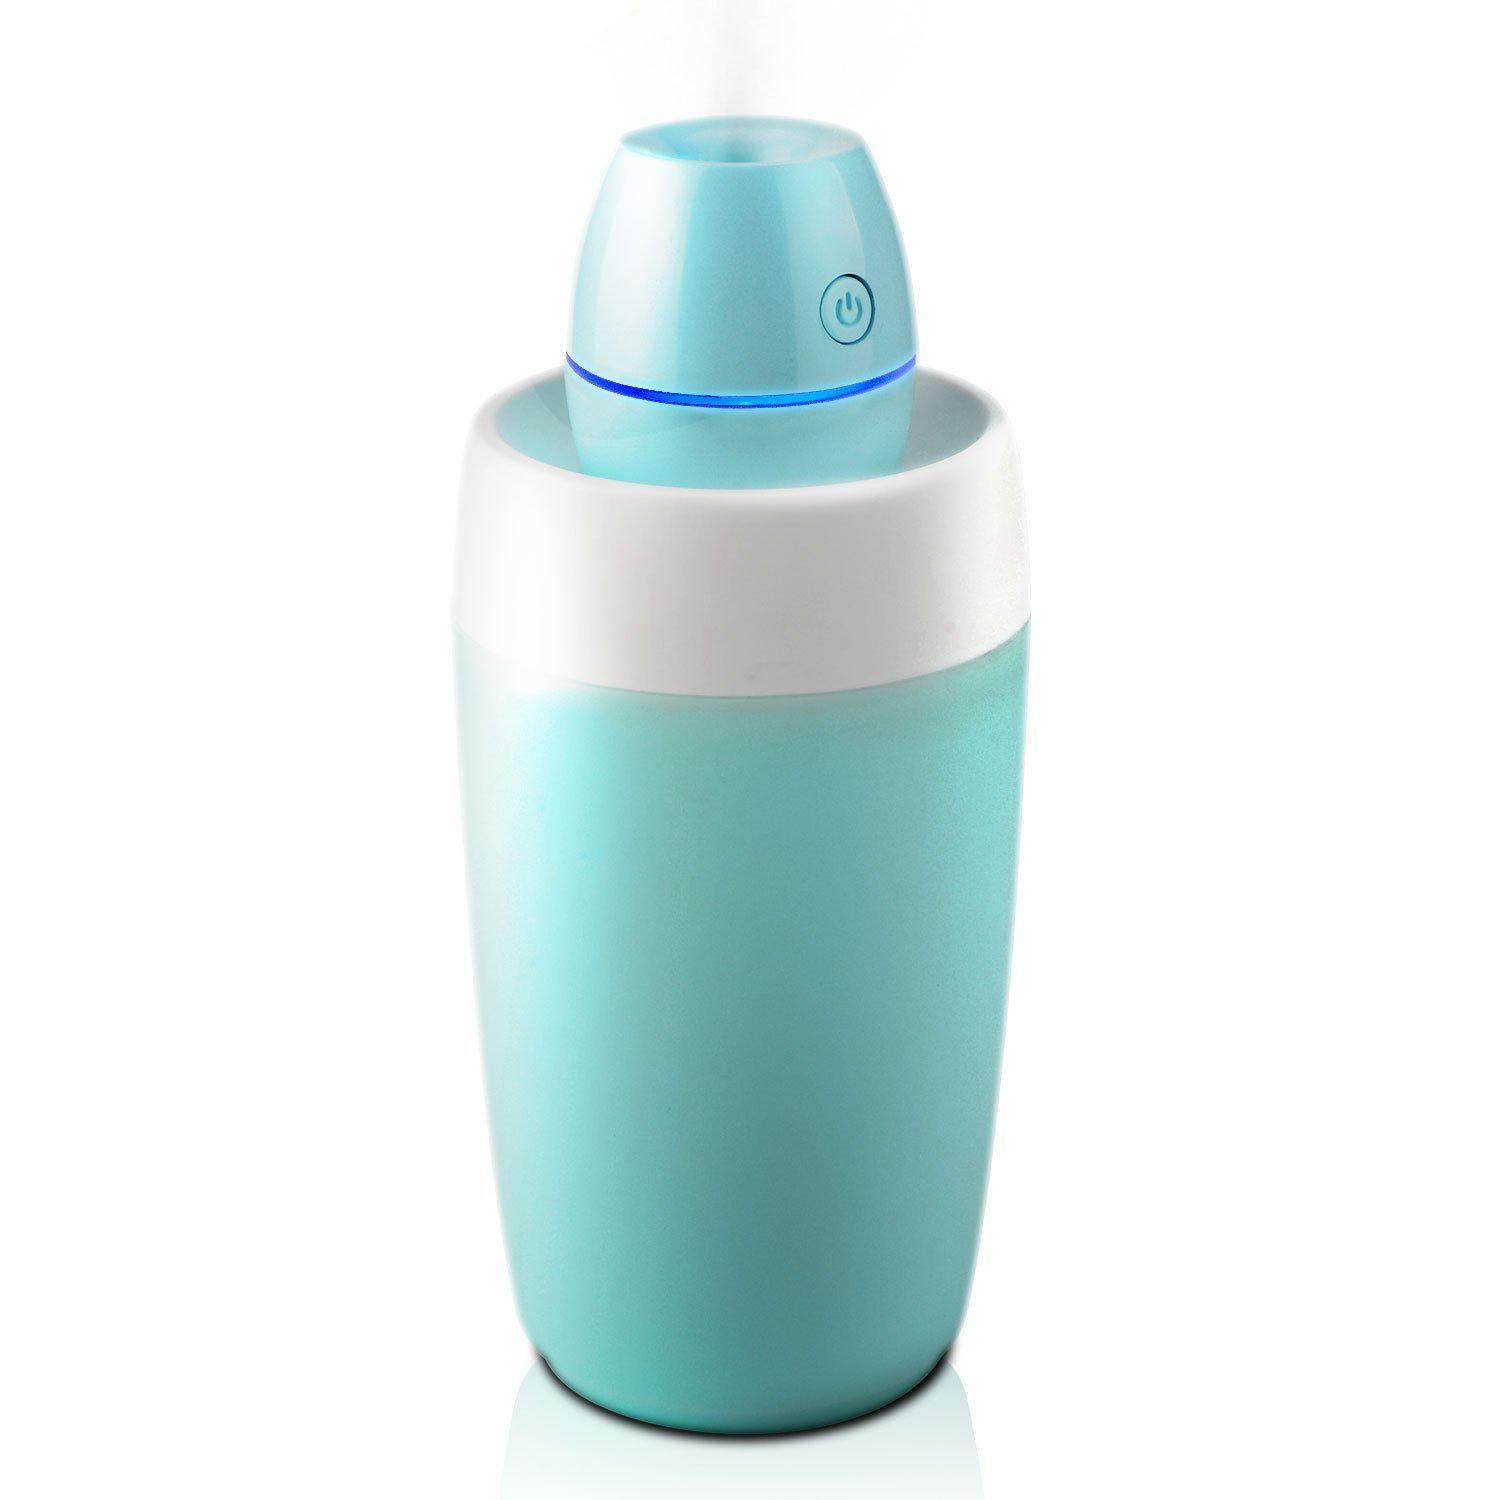 Price Comparisons Of Starrybay Portable Mini Cool Mist Humidifier Ultrasonic Air Essential Oil Diffuser With Led Small Perfect For Travel Home Office Or Car Humidifiers With Water Bottle Intl